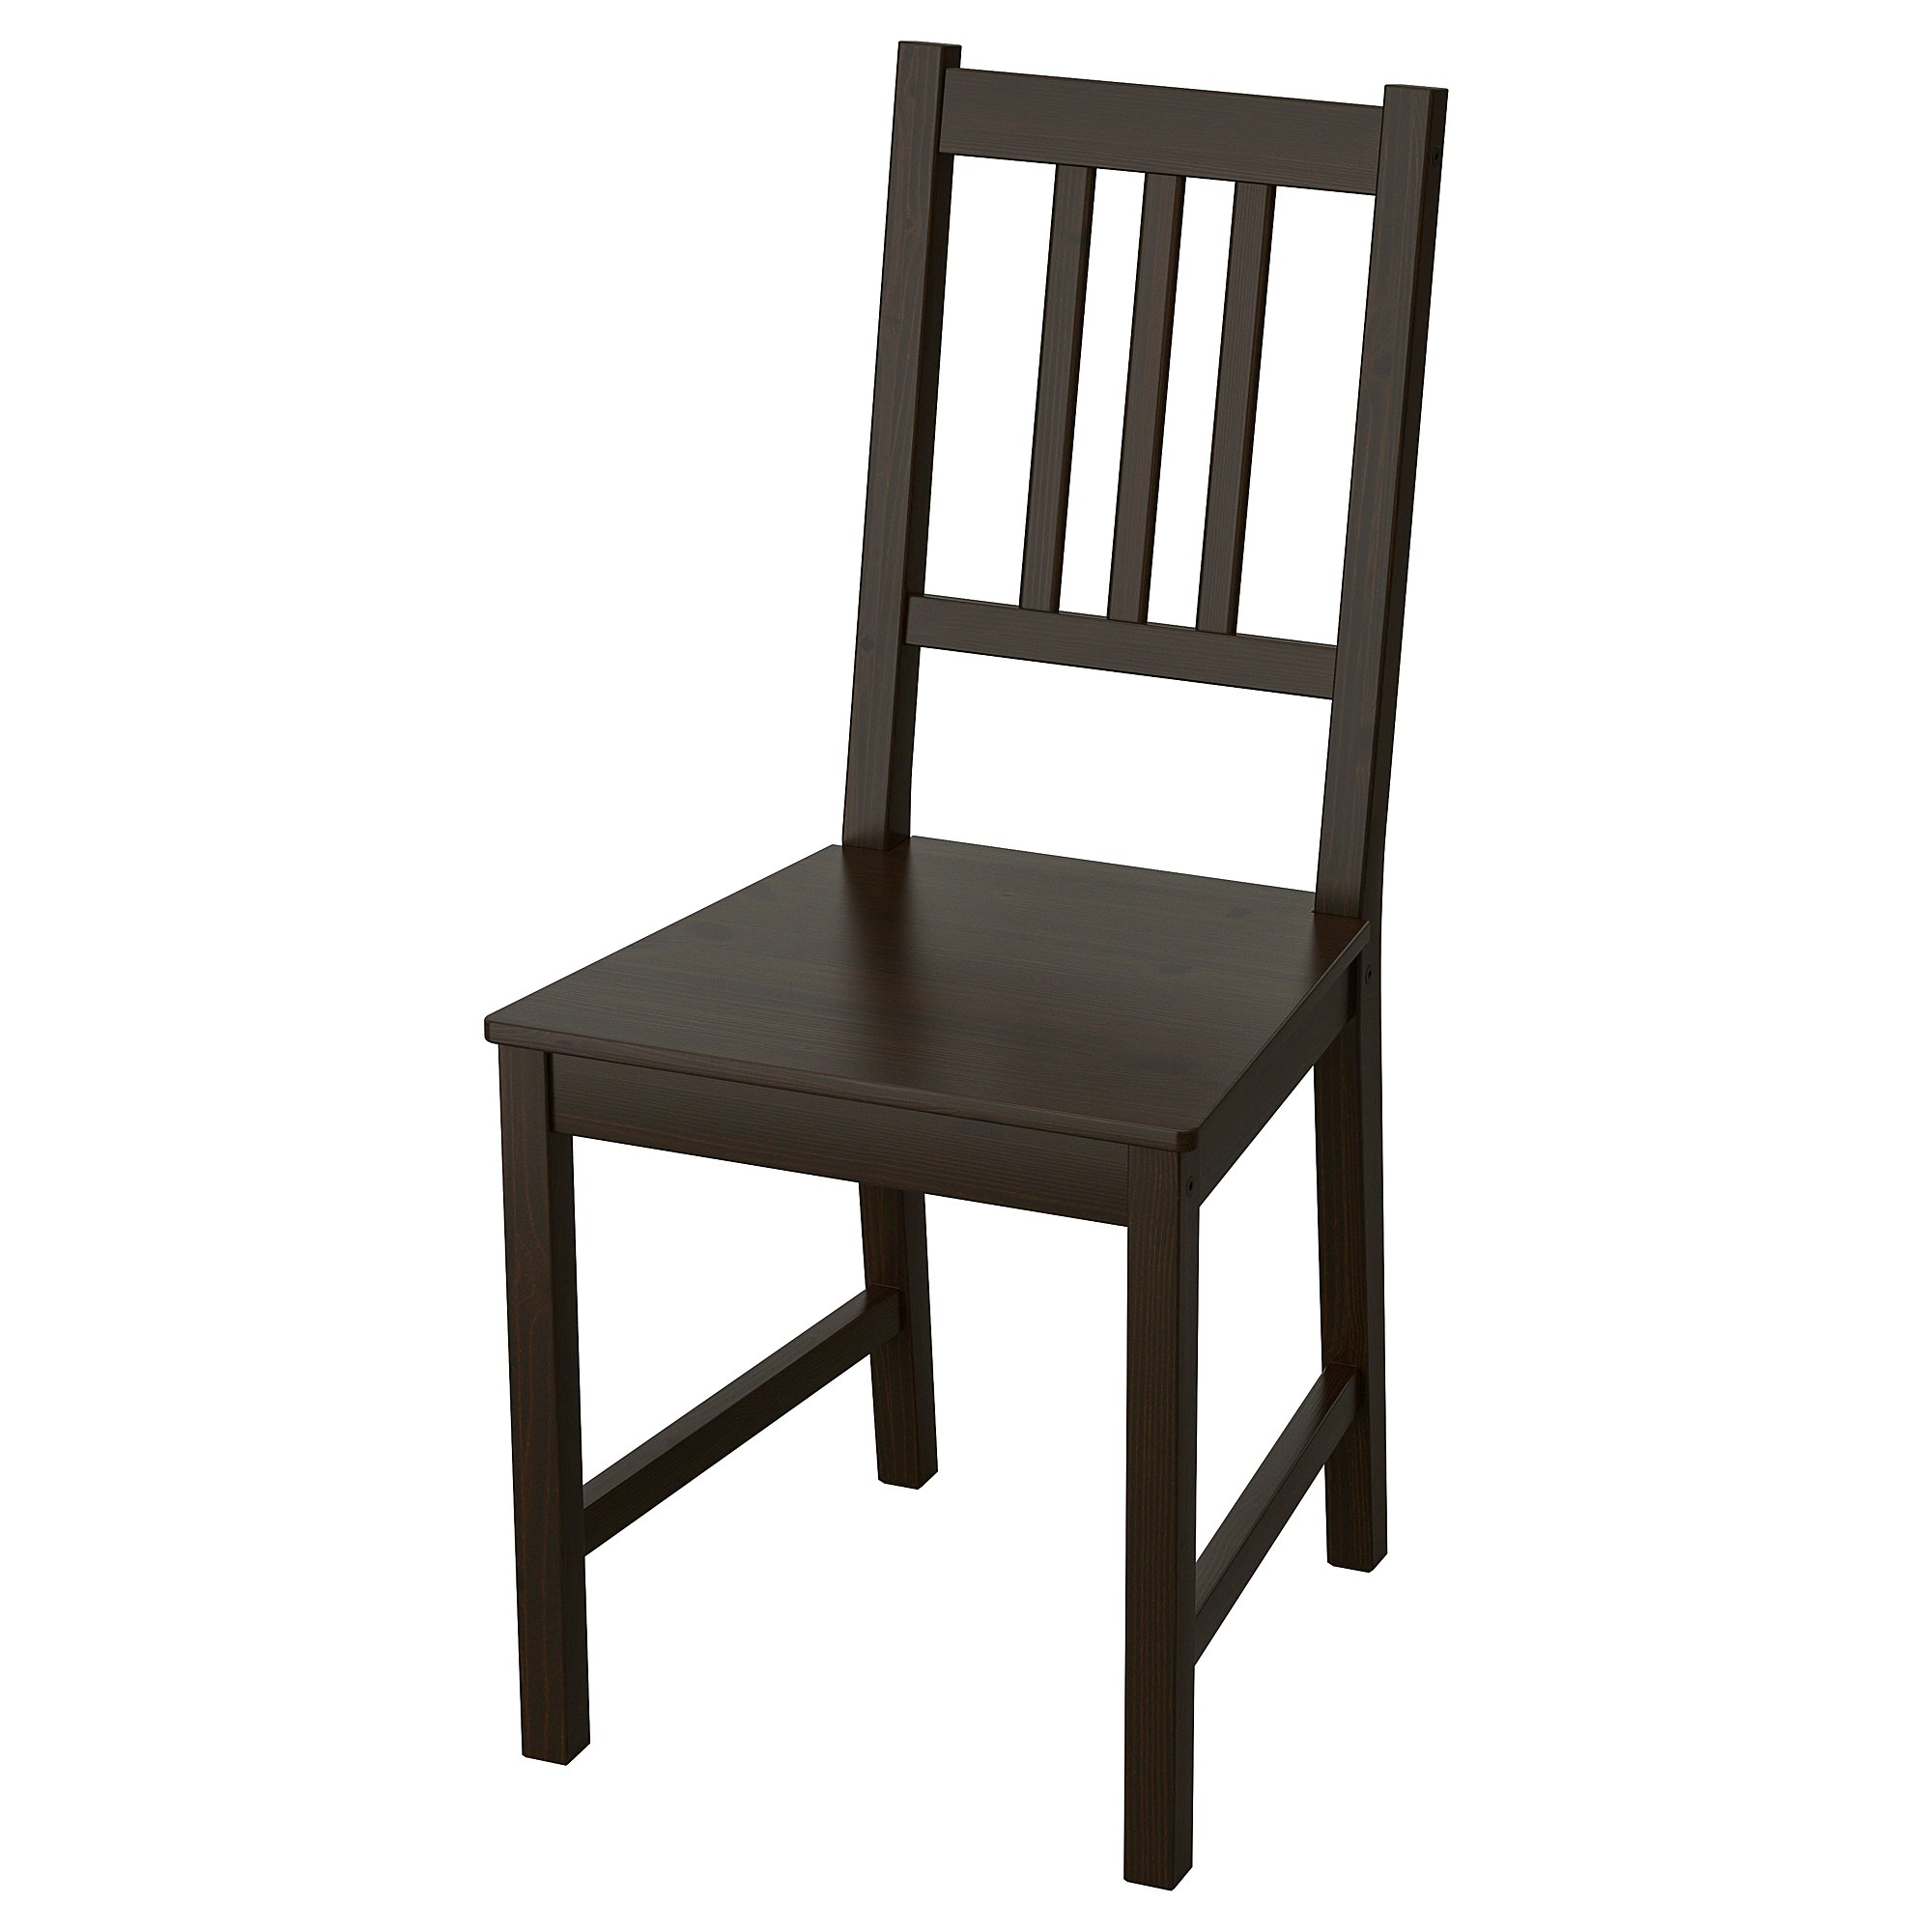 Dining Chairs Ikea Stefan Chair Brown Black